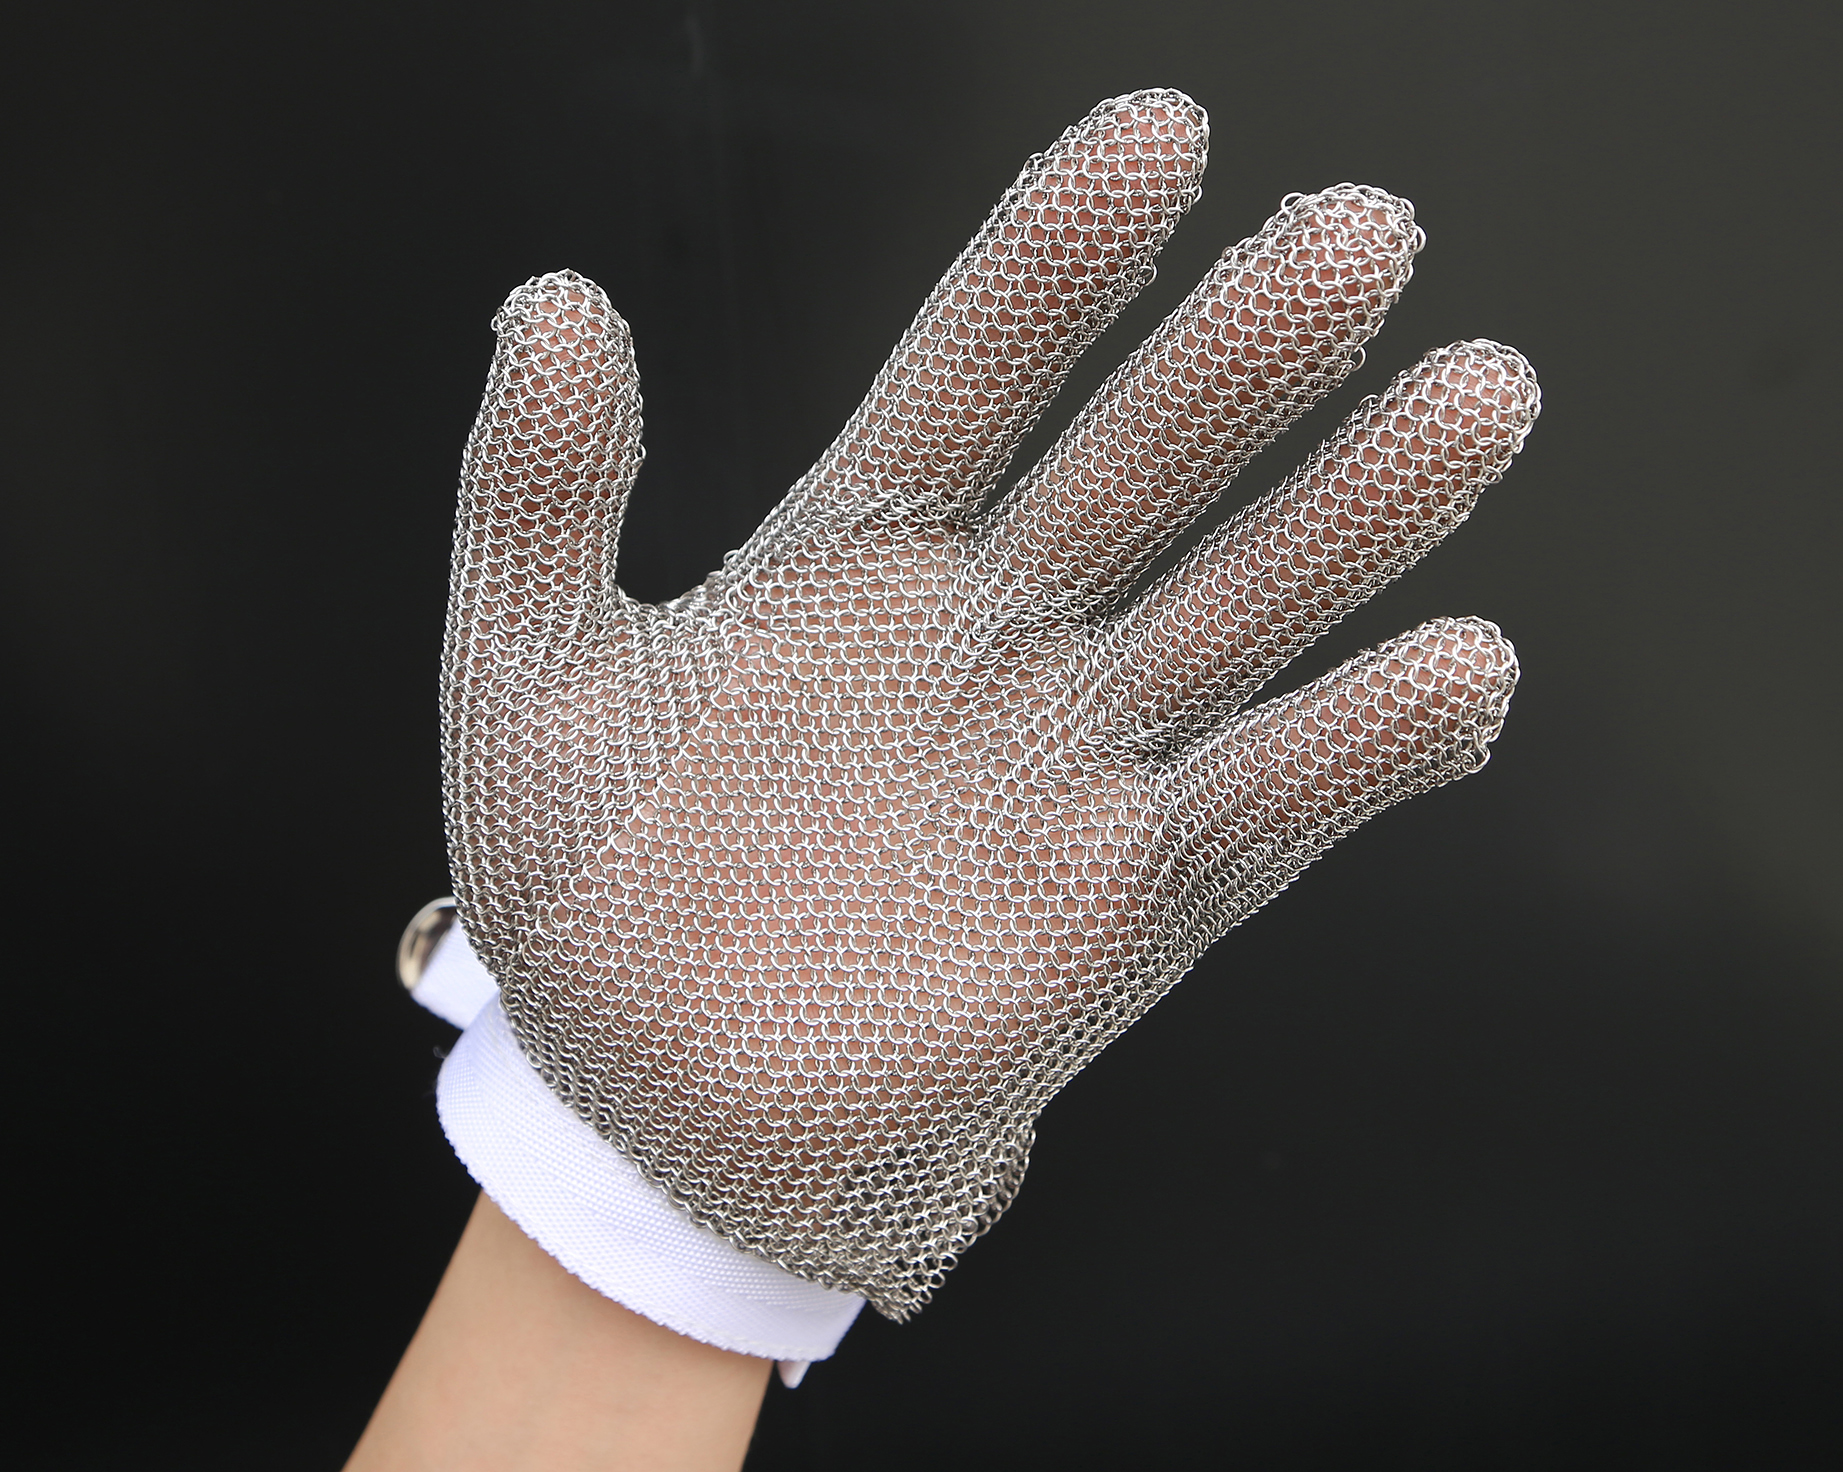 The Main Metal Mesh Glove Type Offered By Zhonghe Ring Mesh Product Co., Ltd